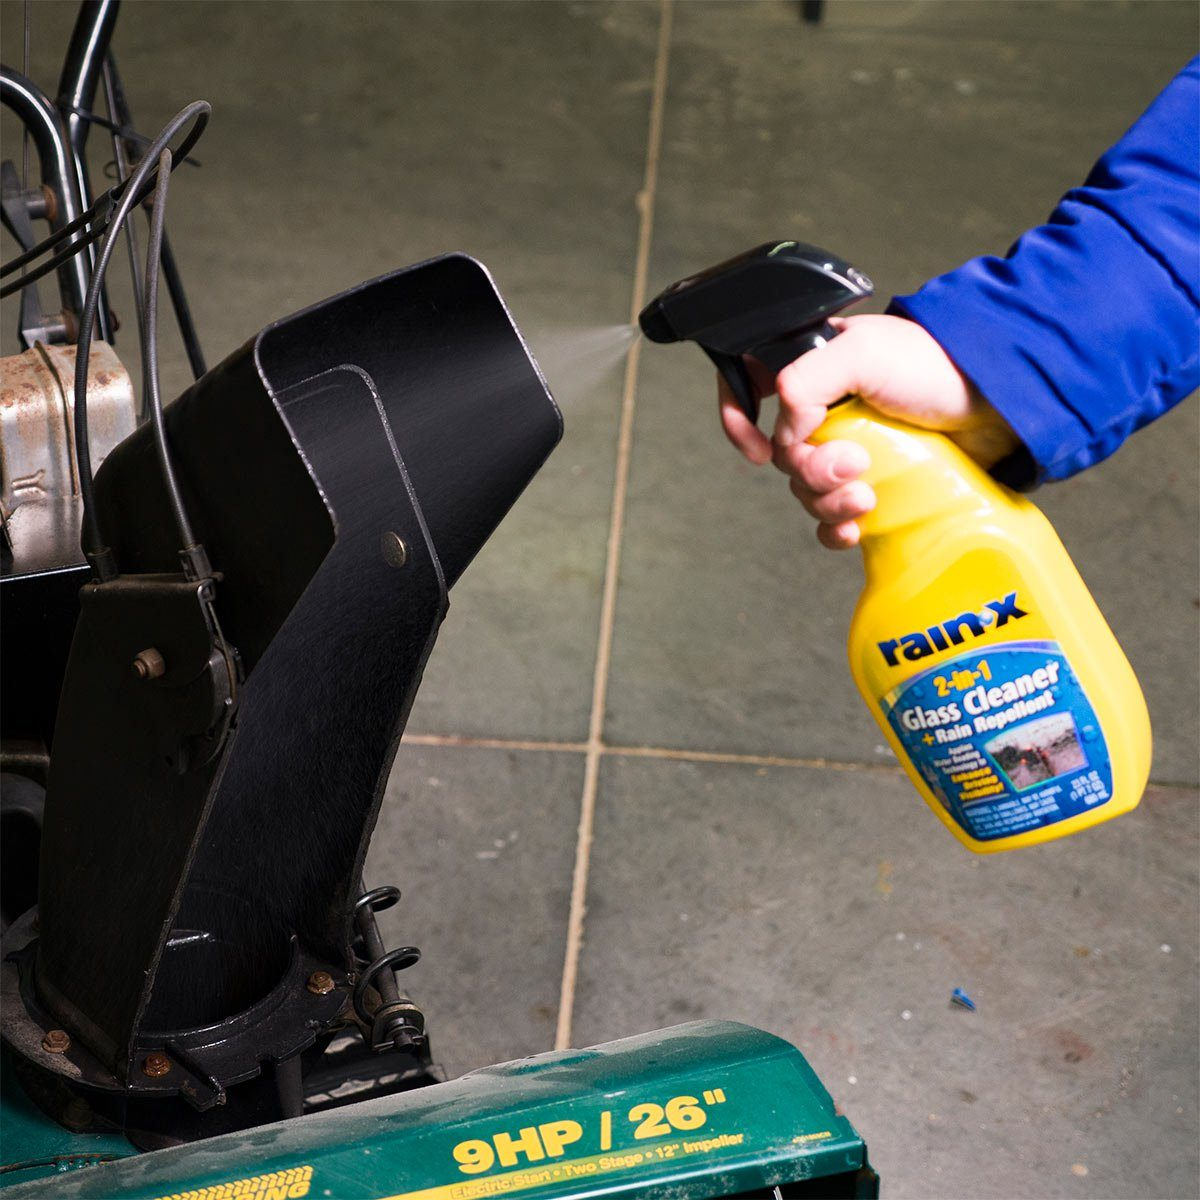 spraying rain-x inside snowthrower chute